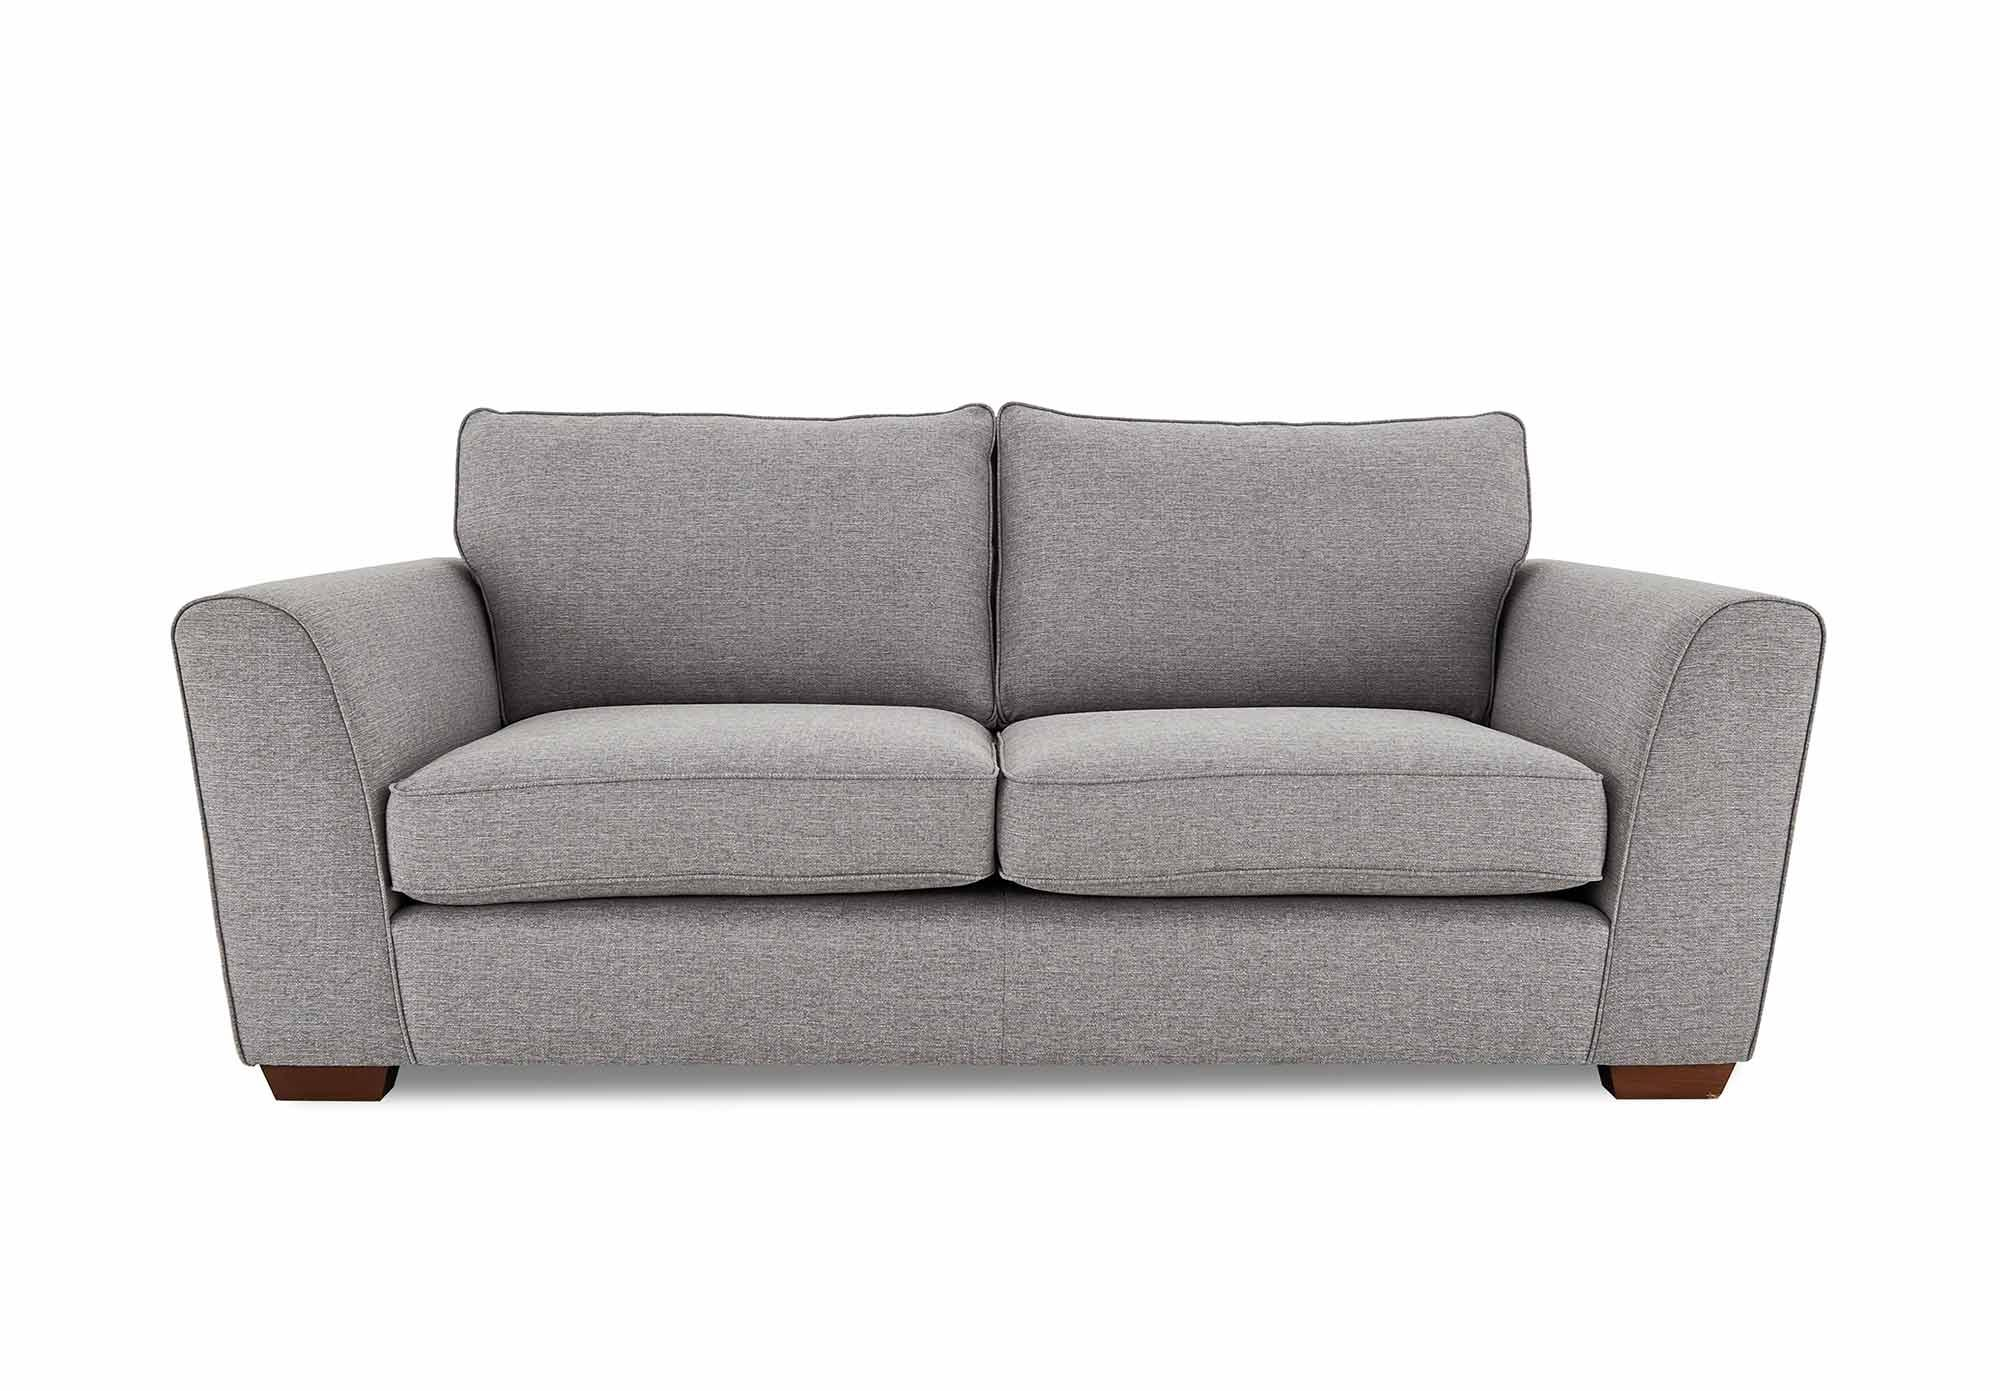 sofa bed chairs. High Street Oxford 3 Seater Fabric Sofa Bed Chairs D